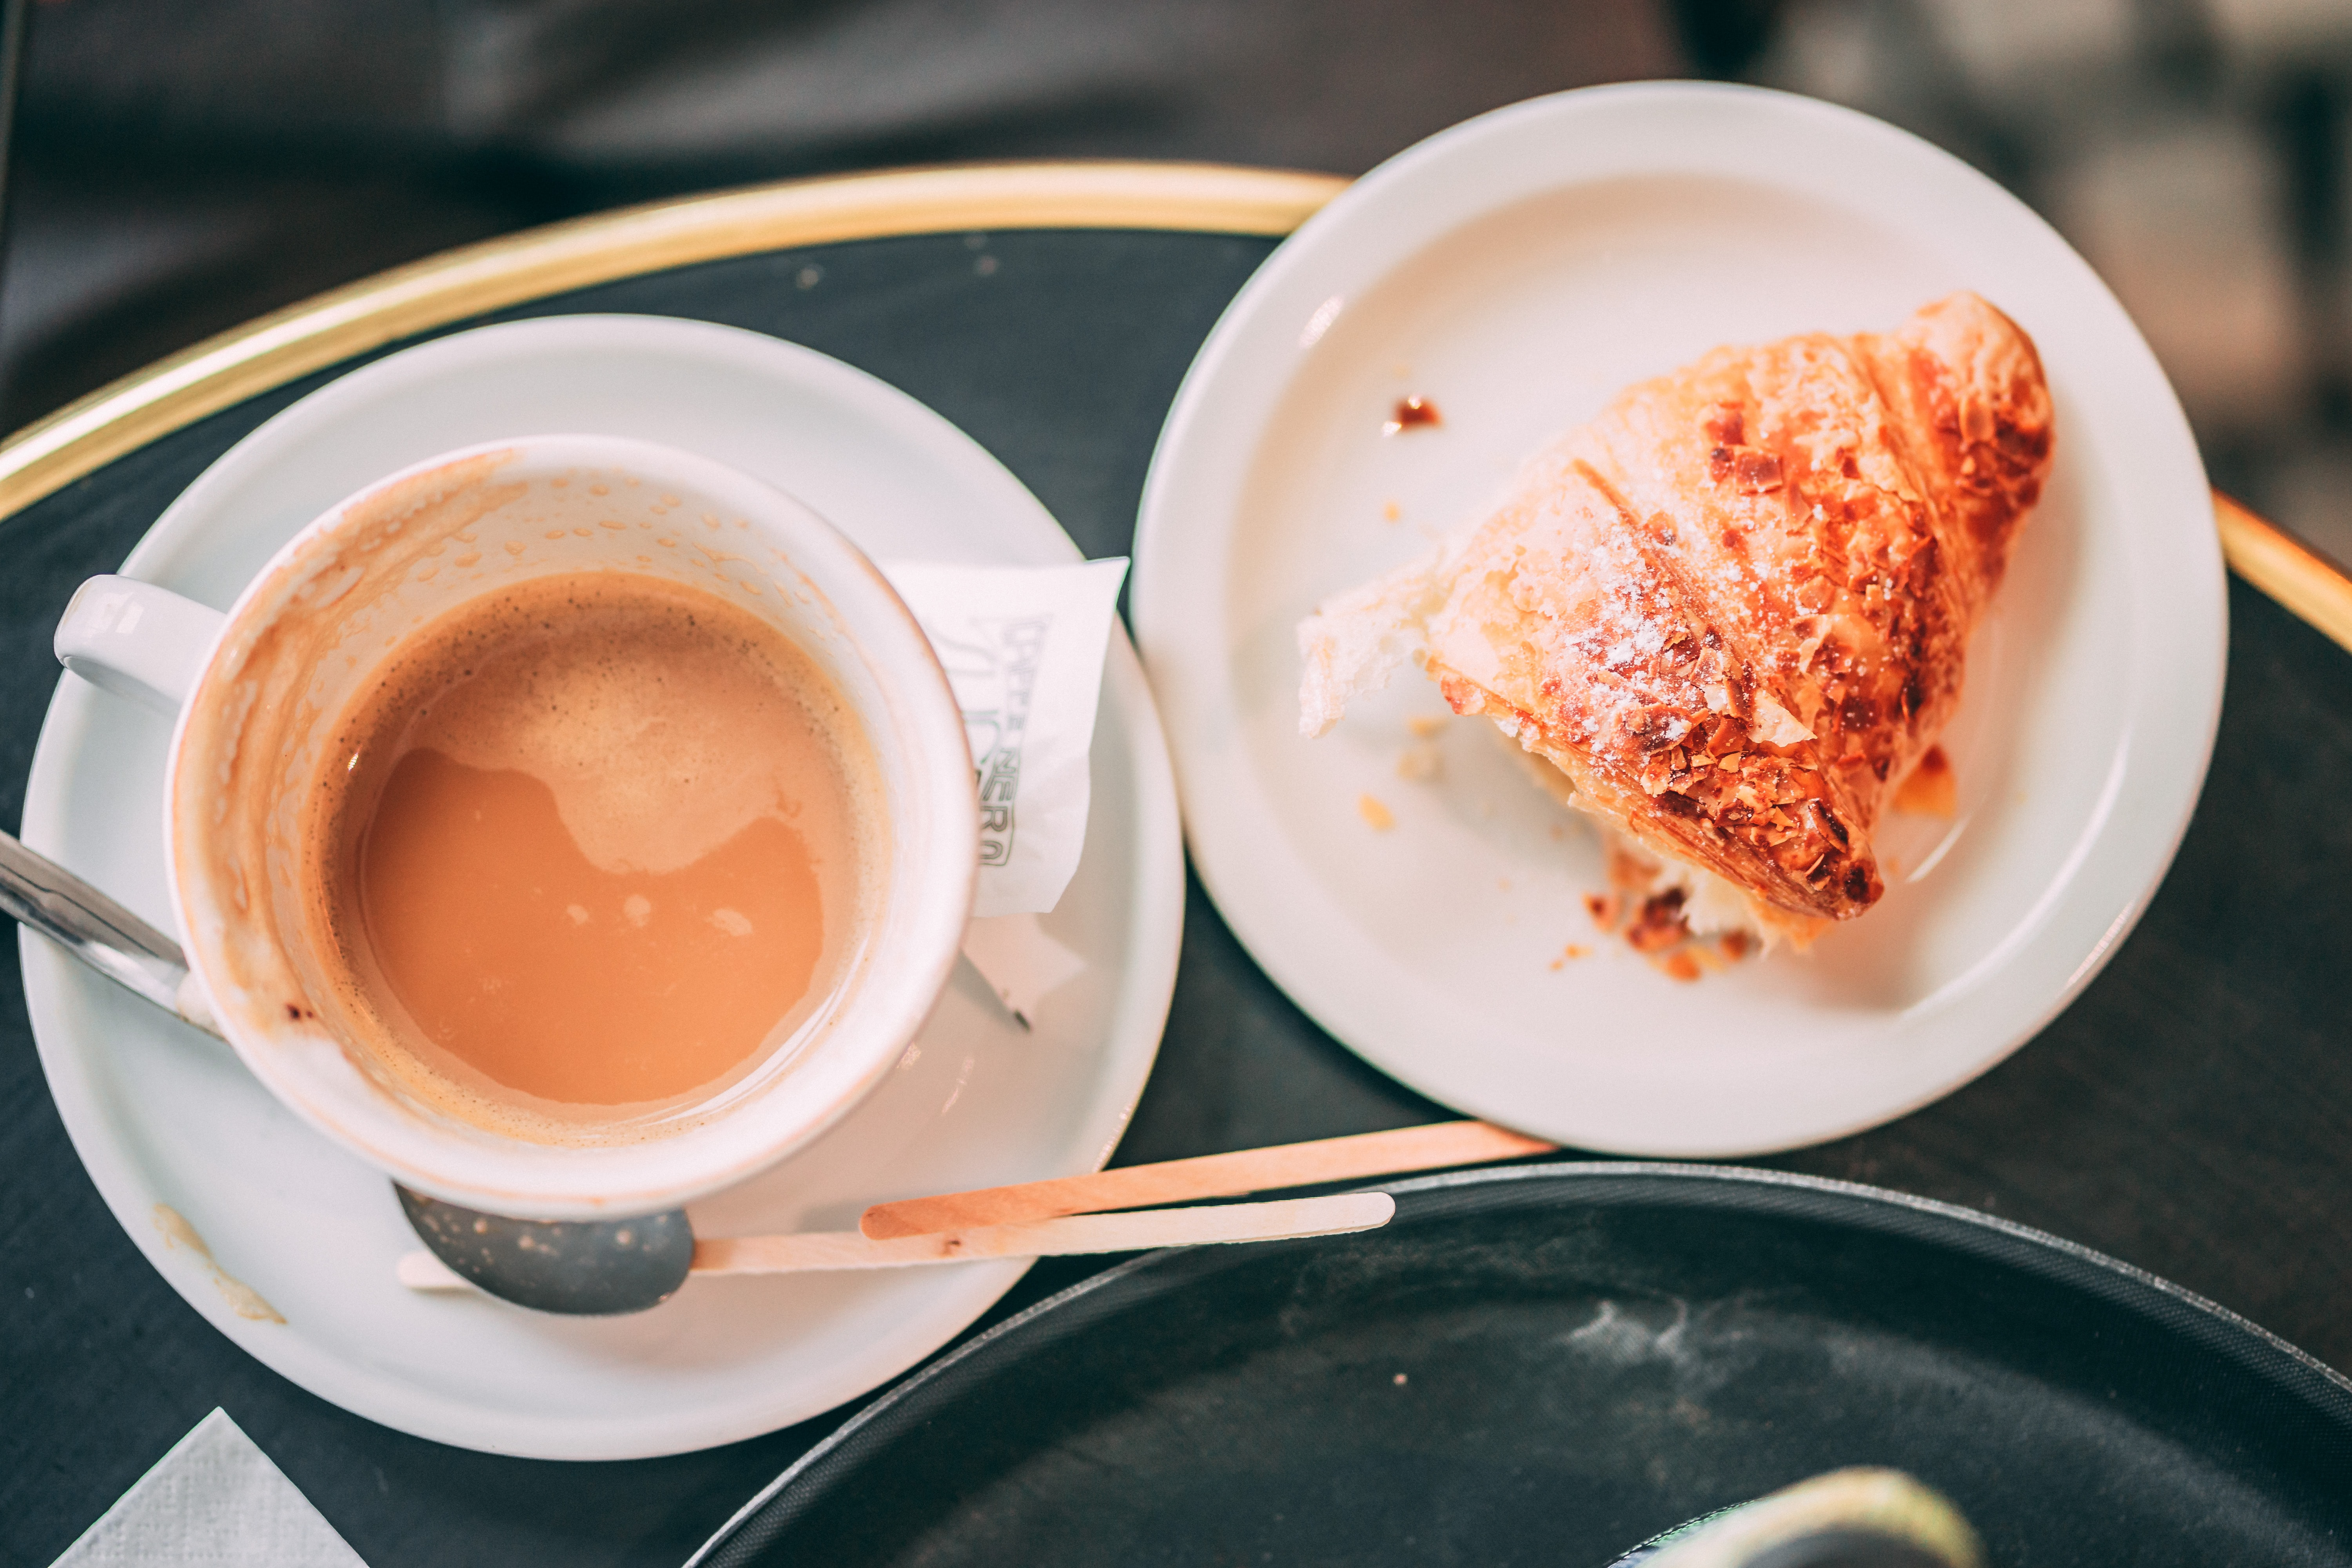 cup of coffee on table and baked bread on plate